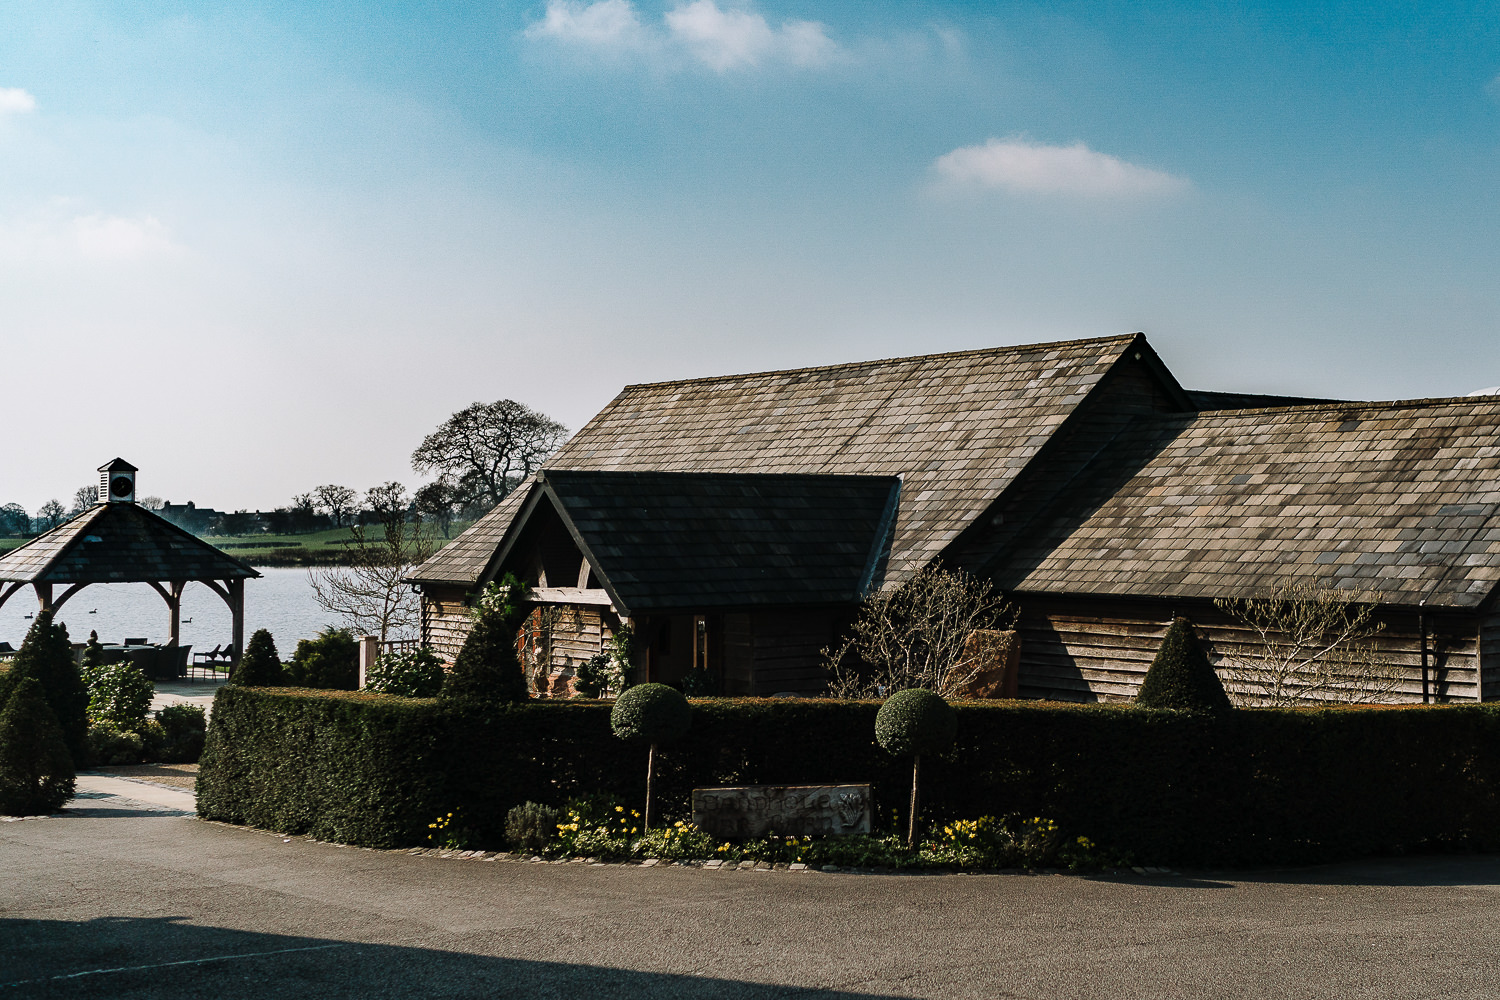 A photo of the barn